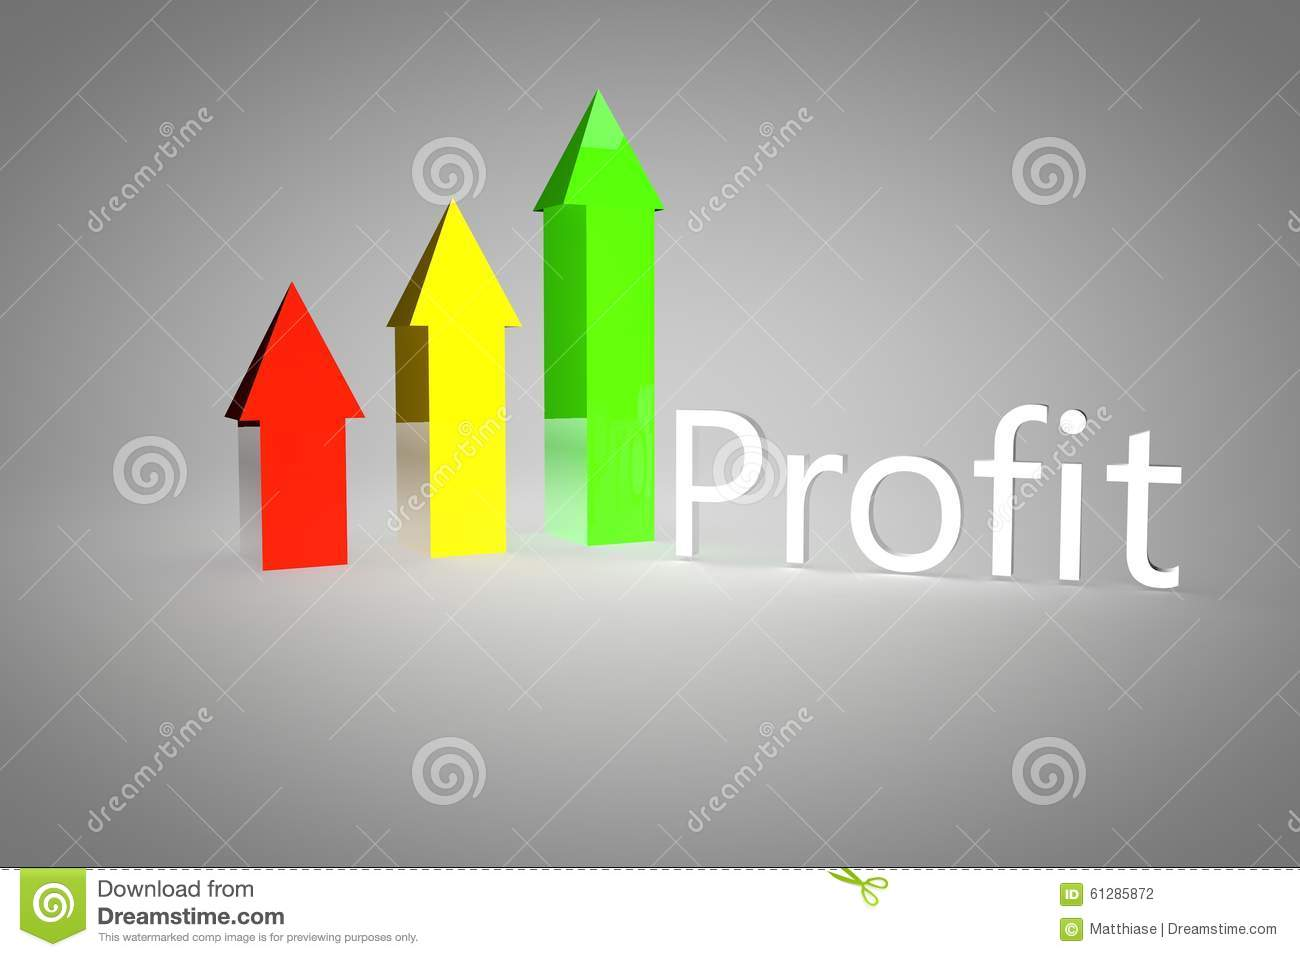 business profitability 6 july 2016 the business profits toolkit: self-assessment and company tax returns (2015 to 2016) has been added to the page 11 june 2015 agent toolkit for business profits updated for the 2014 to.